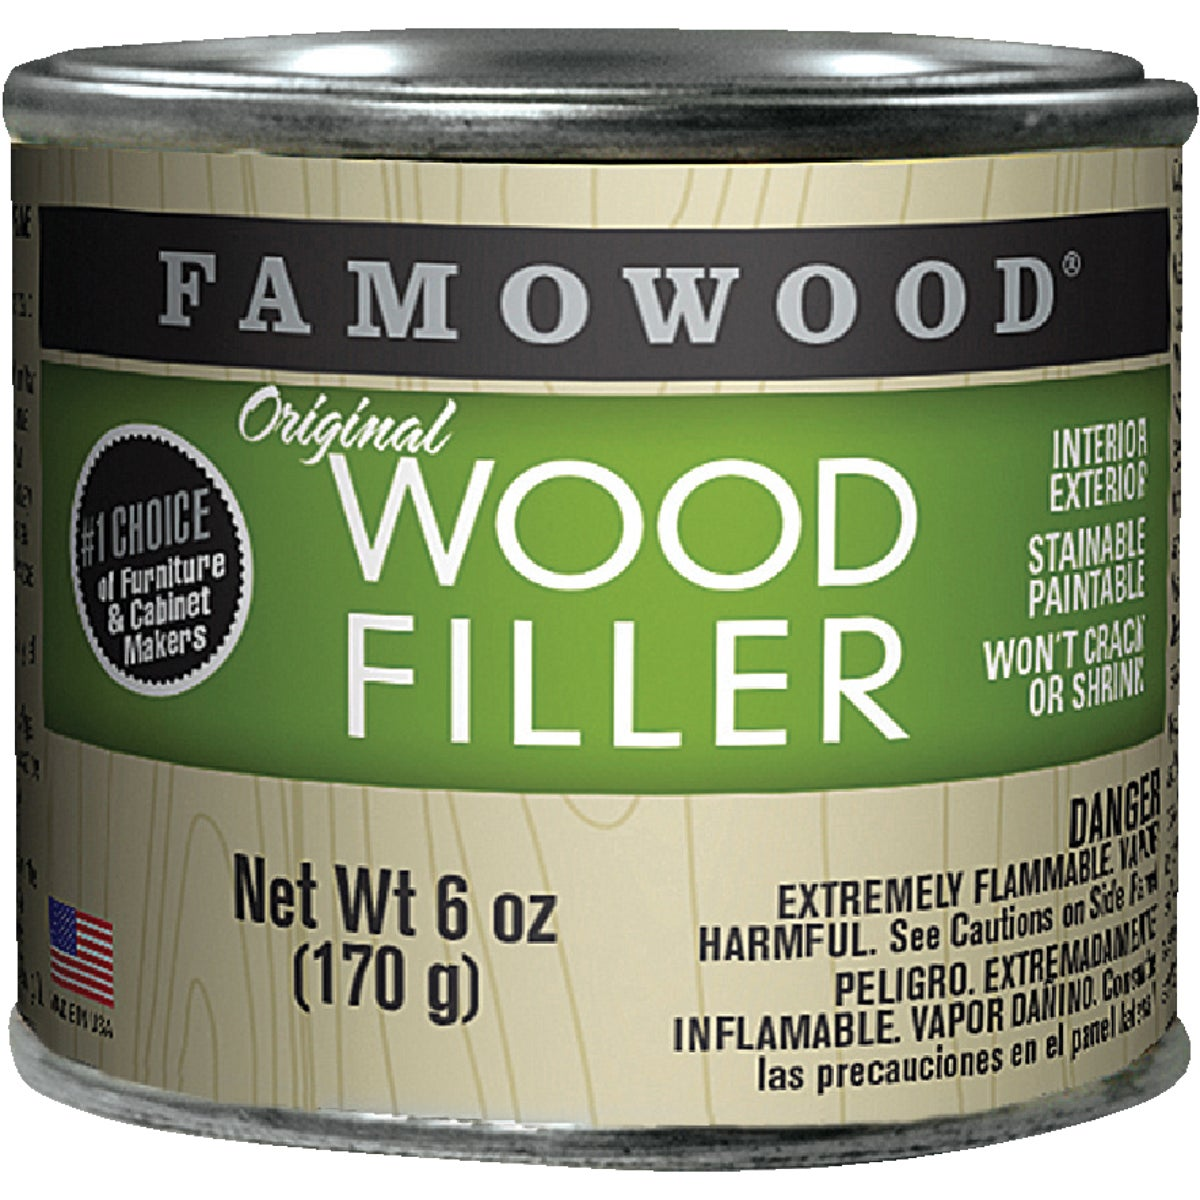 1/4PT WHT PN WOOD FILLER - 36141148 by Eclectic Prod Inc